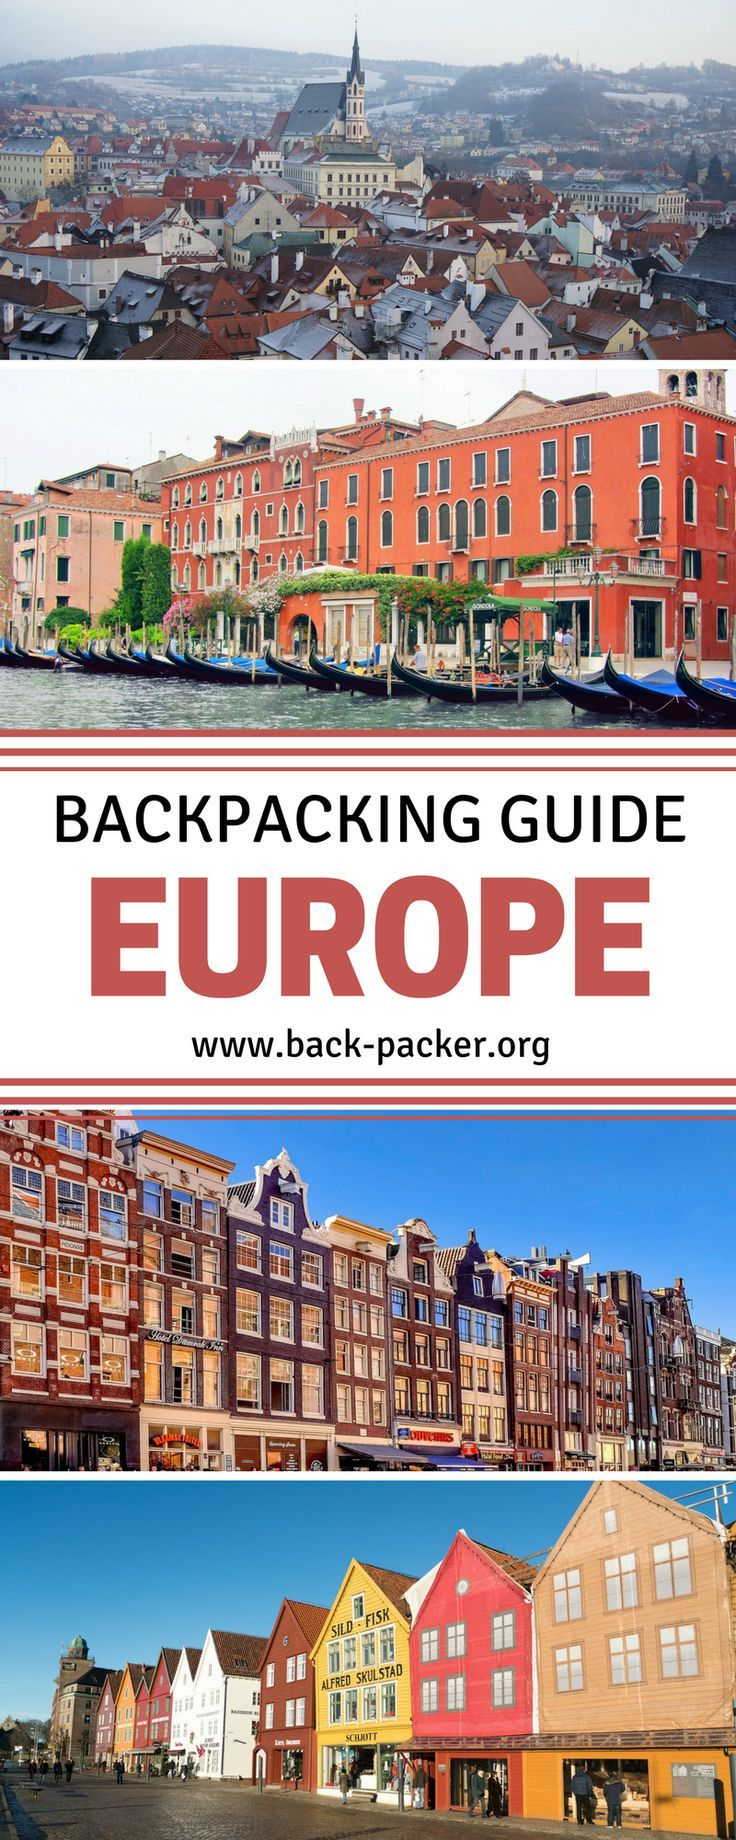 The complete guide to backpacking Europe on a budget. Tips for luggage, packing, transportation and accommodation + budget guides to cities in England, Spain, Italy, Germany, Austria, Norway, Portugal, Scotland and more. Budget travel in Europe.   Back-pa